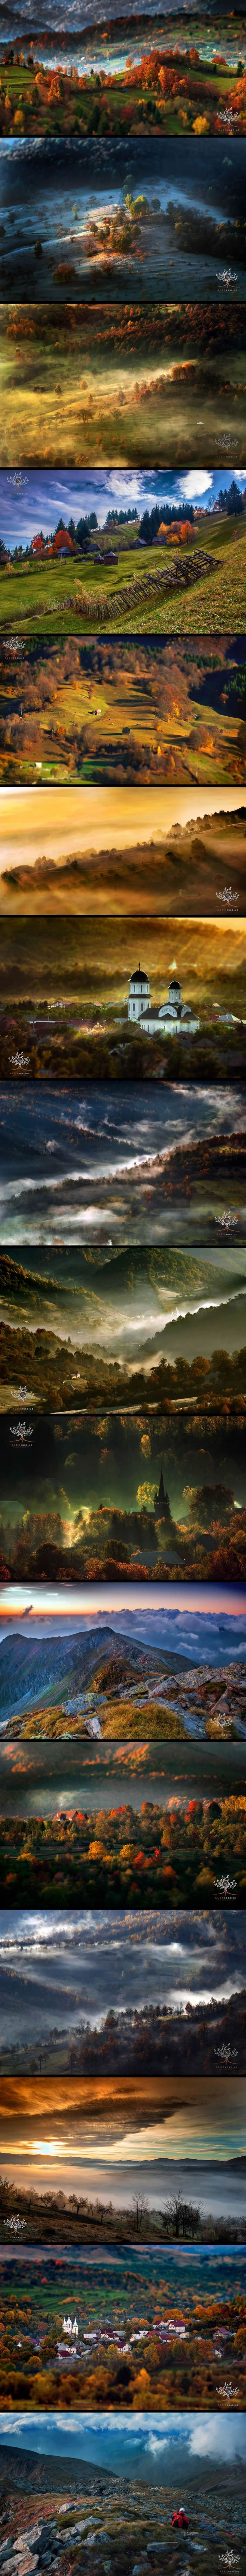 Photographer Wakes Up At 5am To Hike In Transylvanian Mountains And Photograph…